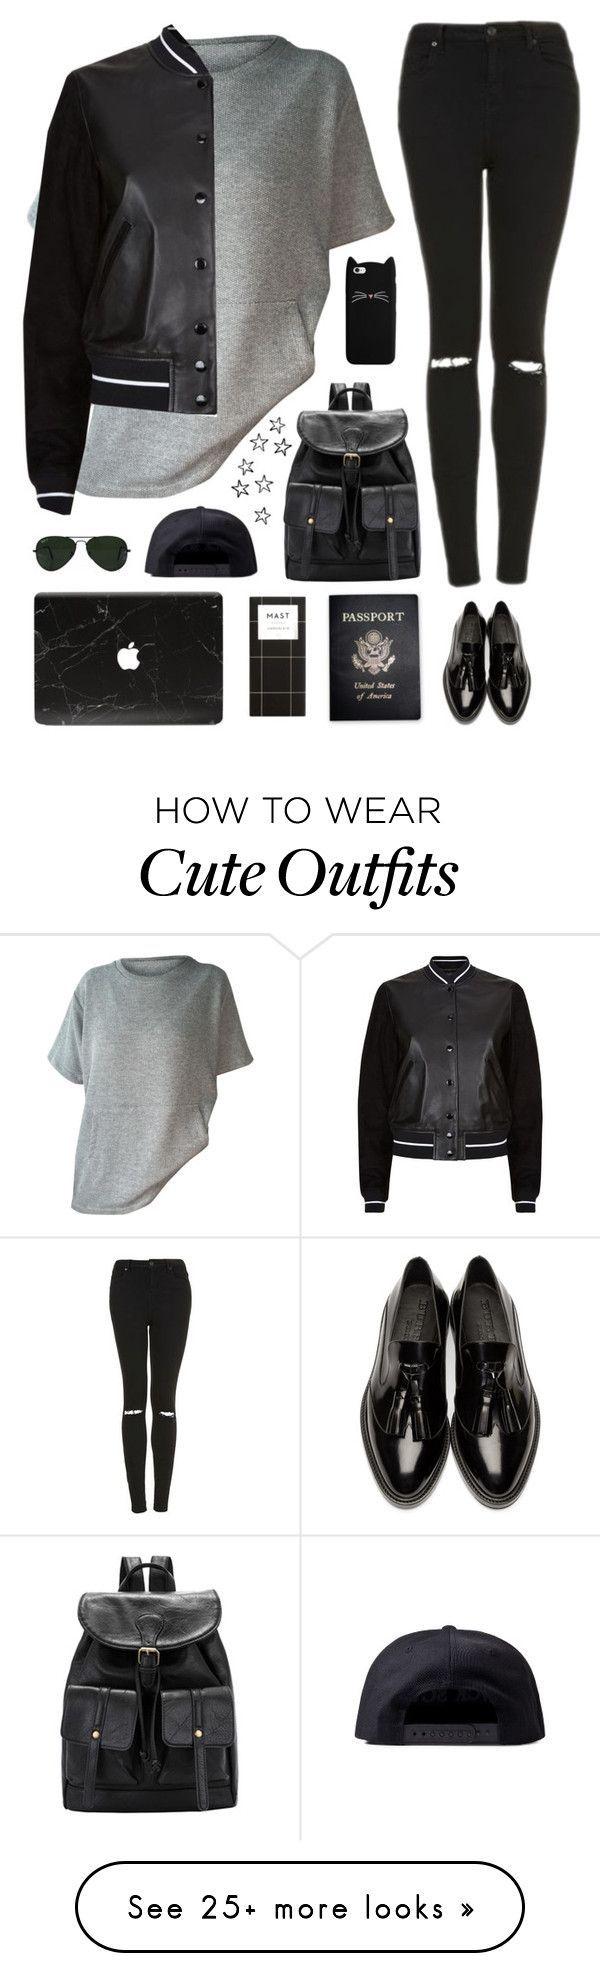 """Tomboy outfit"" by genesis129 on Polyvore featuring rag & bone, Burberry, Topshop, Ray-Ban, Black Scale and Passport"